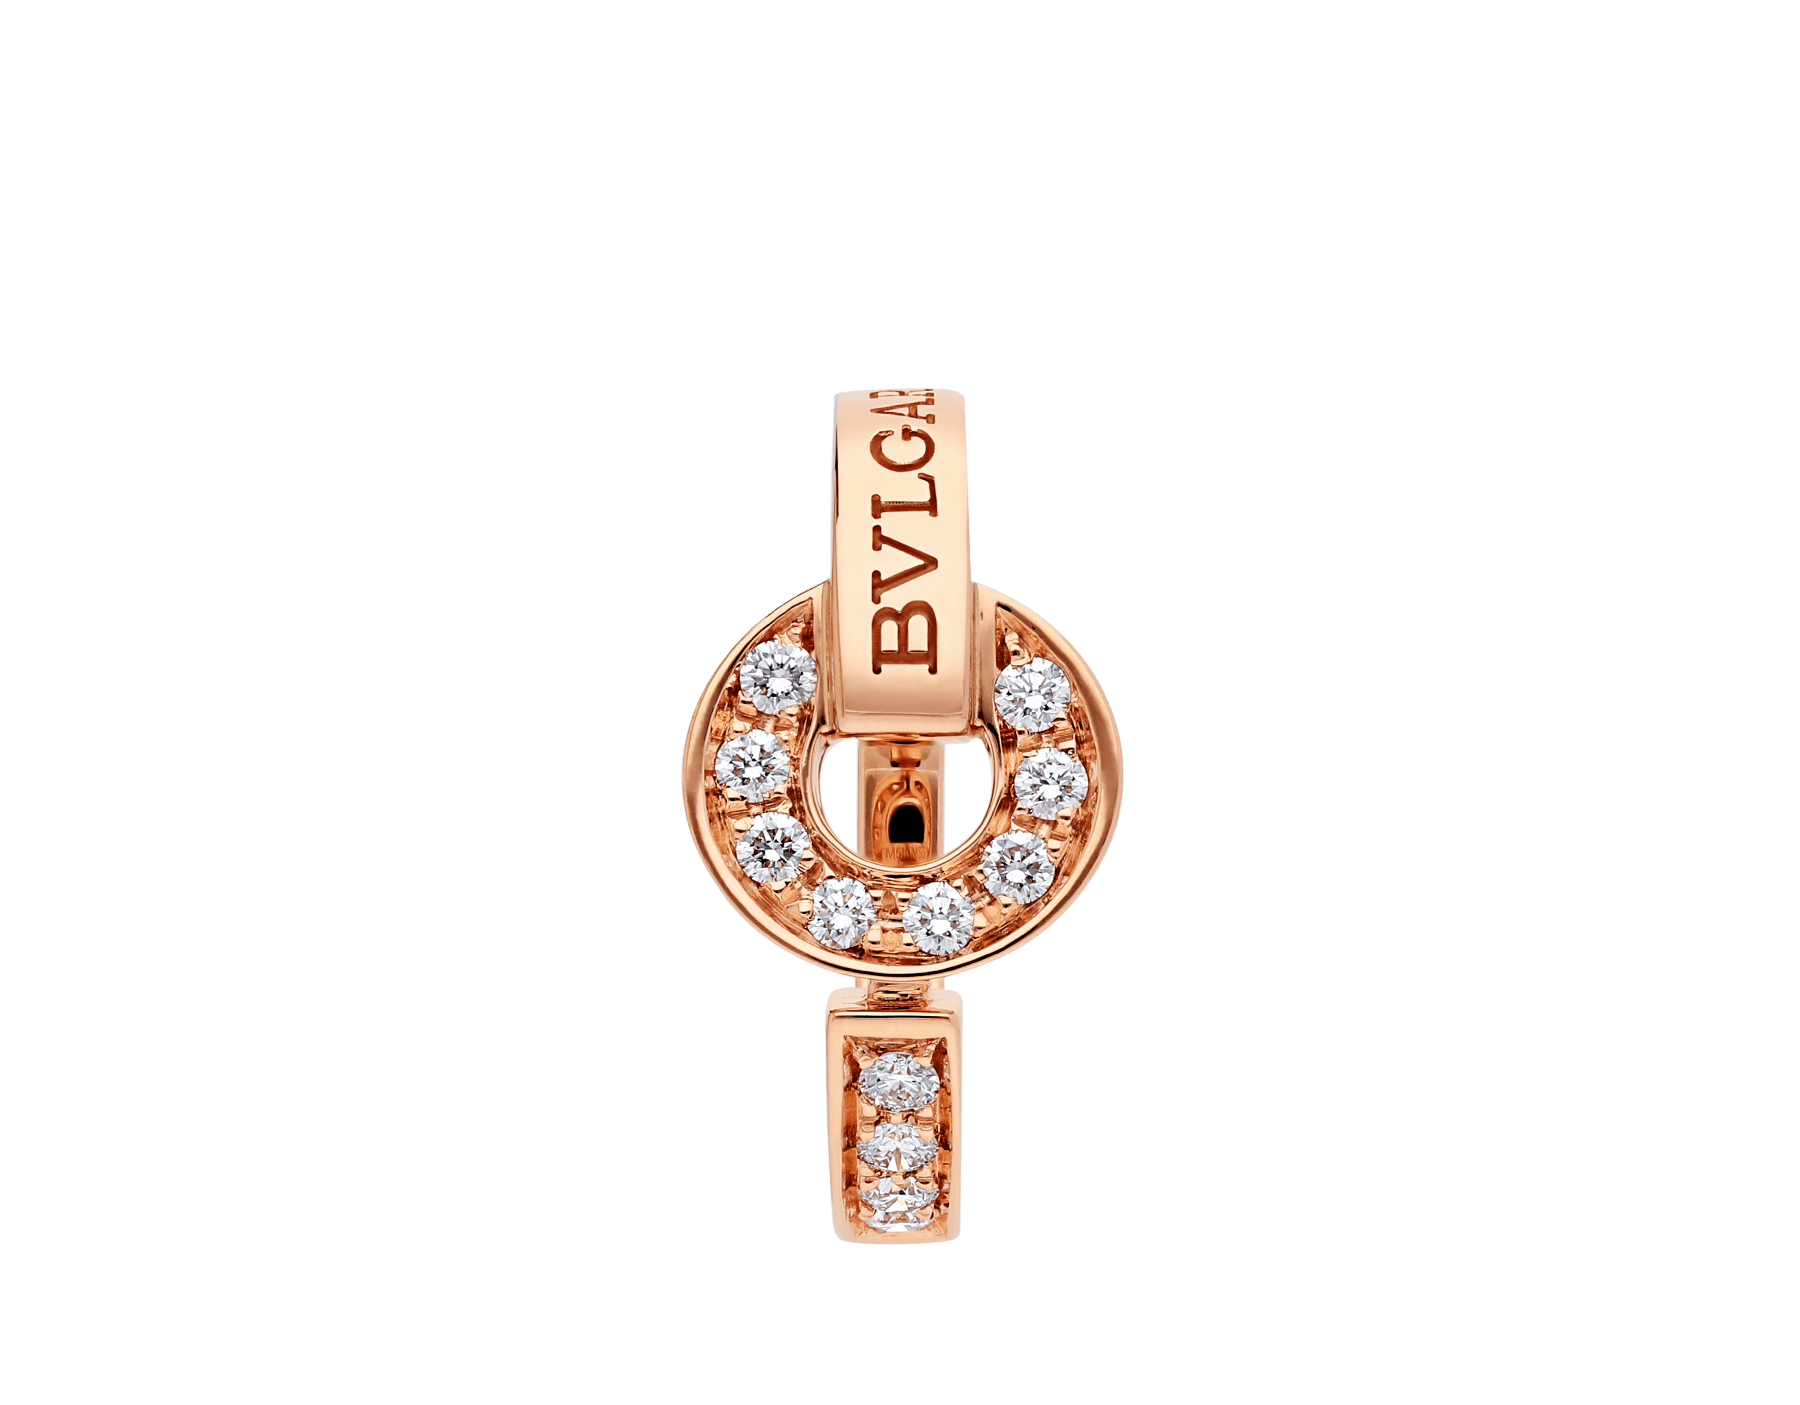 BVLGARI BVLGARI 18 kt rose gold ring set with pavé diamonds AN855854 image 2